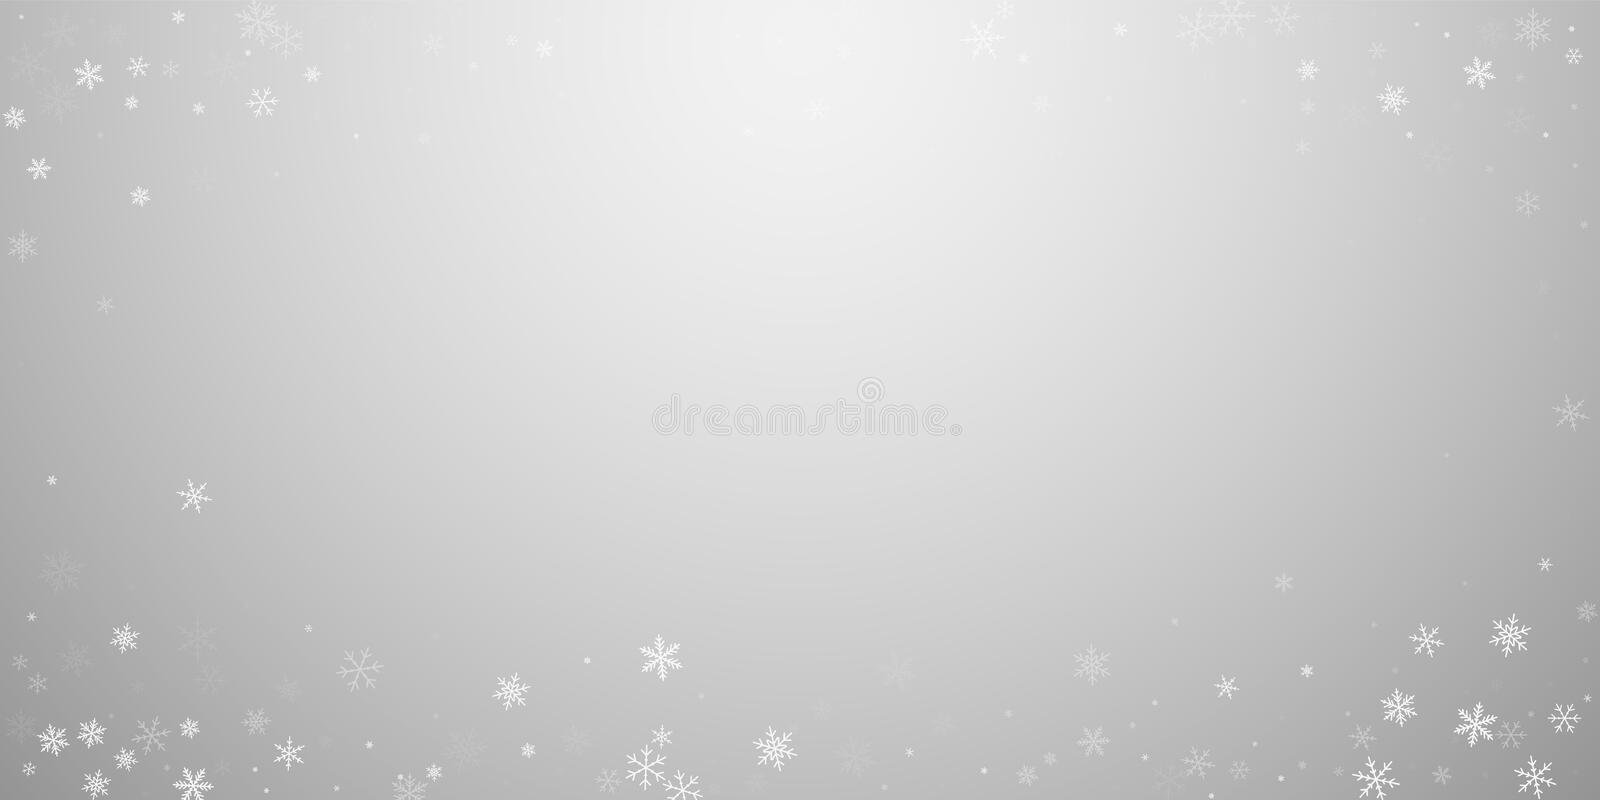 Sparse snowfall Christmas background. Subtle flying snow flakes and stars on light grey background. Bewitching winter silver snowflake overlay template. Extra vector illustration